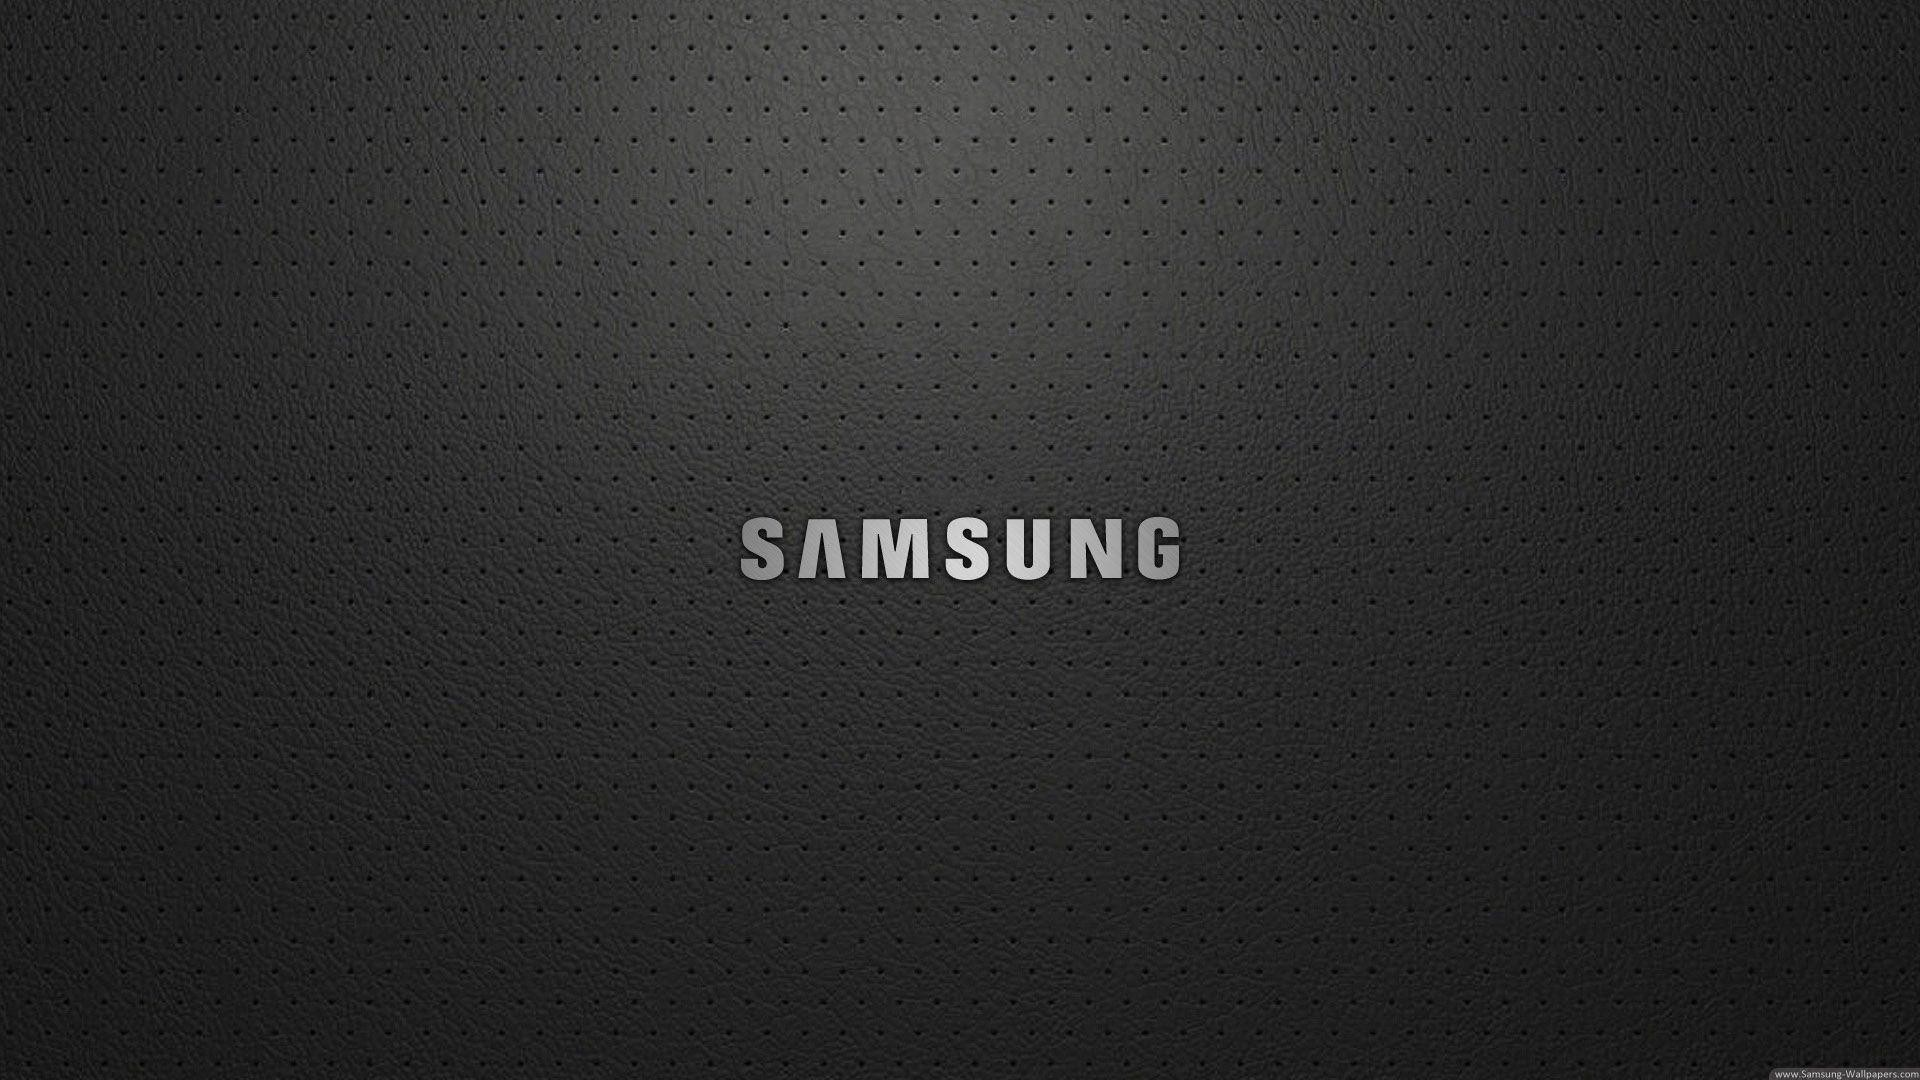 1920x1080 Wallpapers Logo Samsung Hd A Samsung 1920x1080 Download Hd Wallpaper Wallpapertip